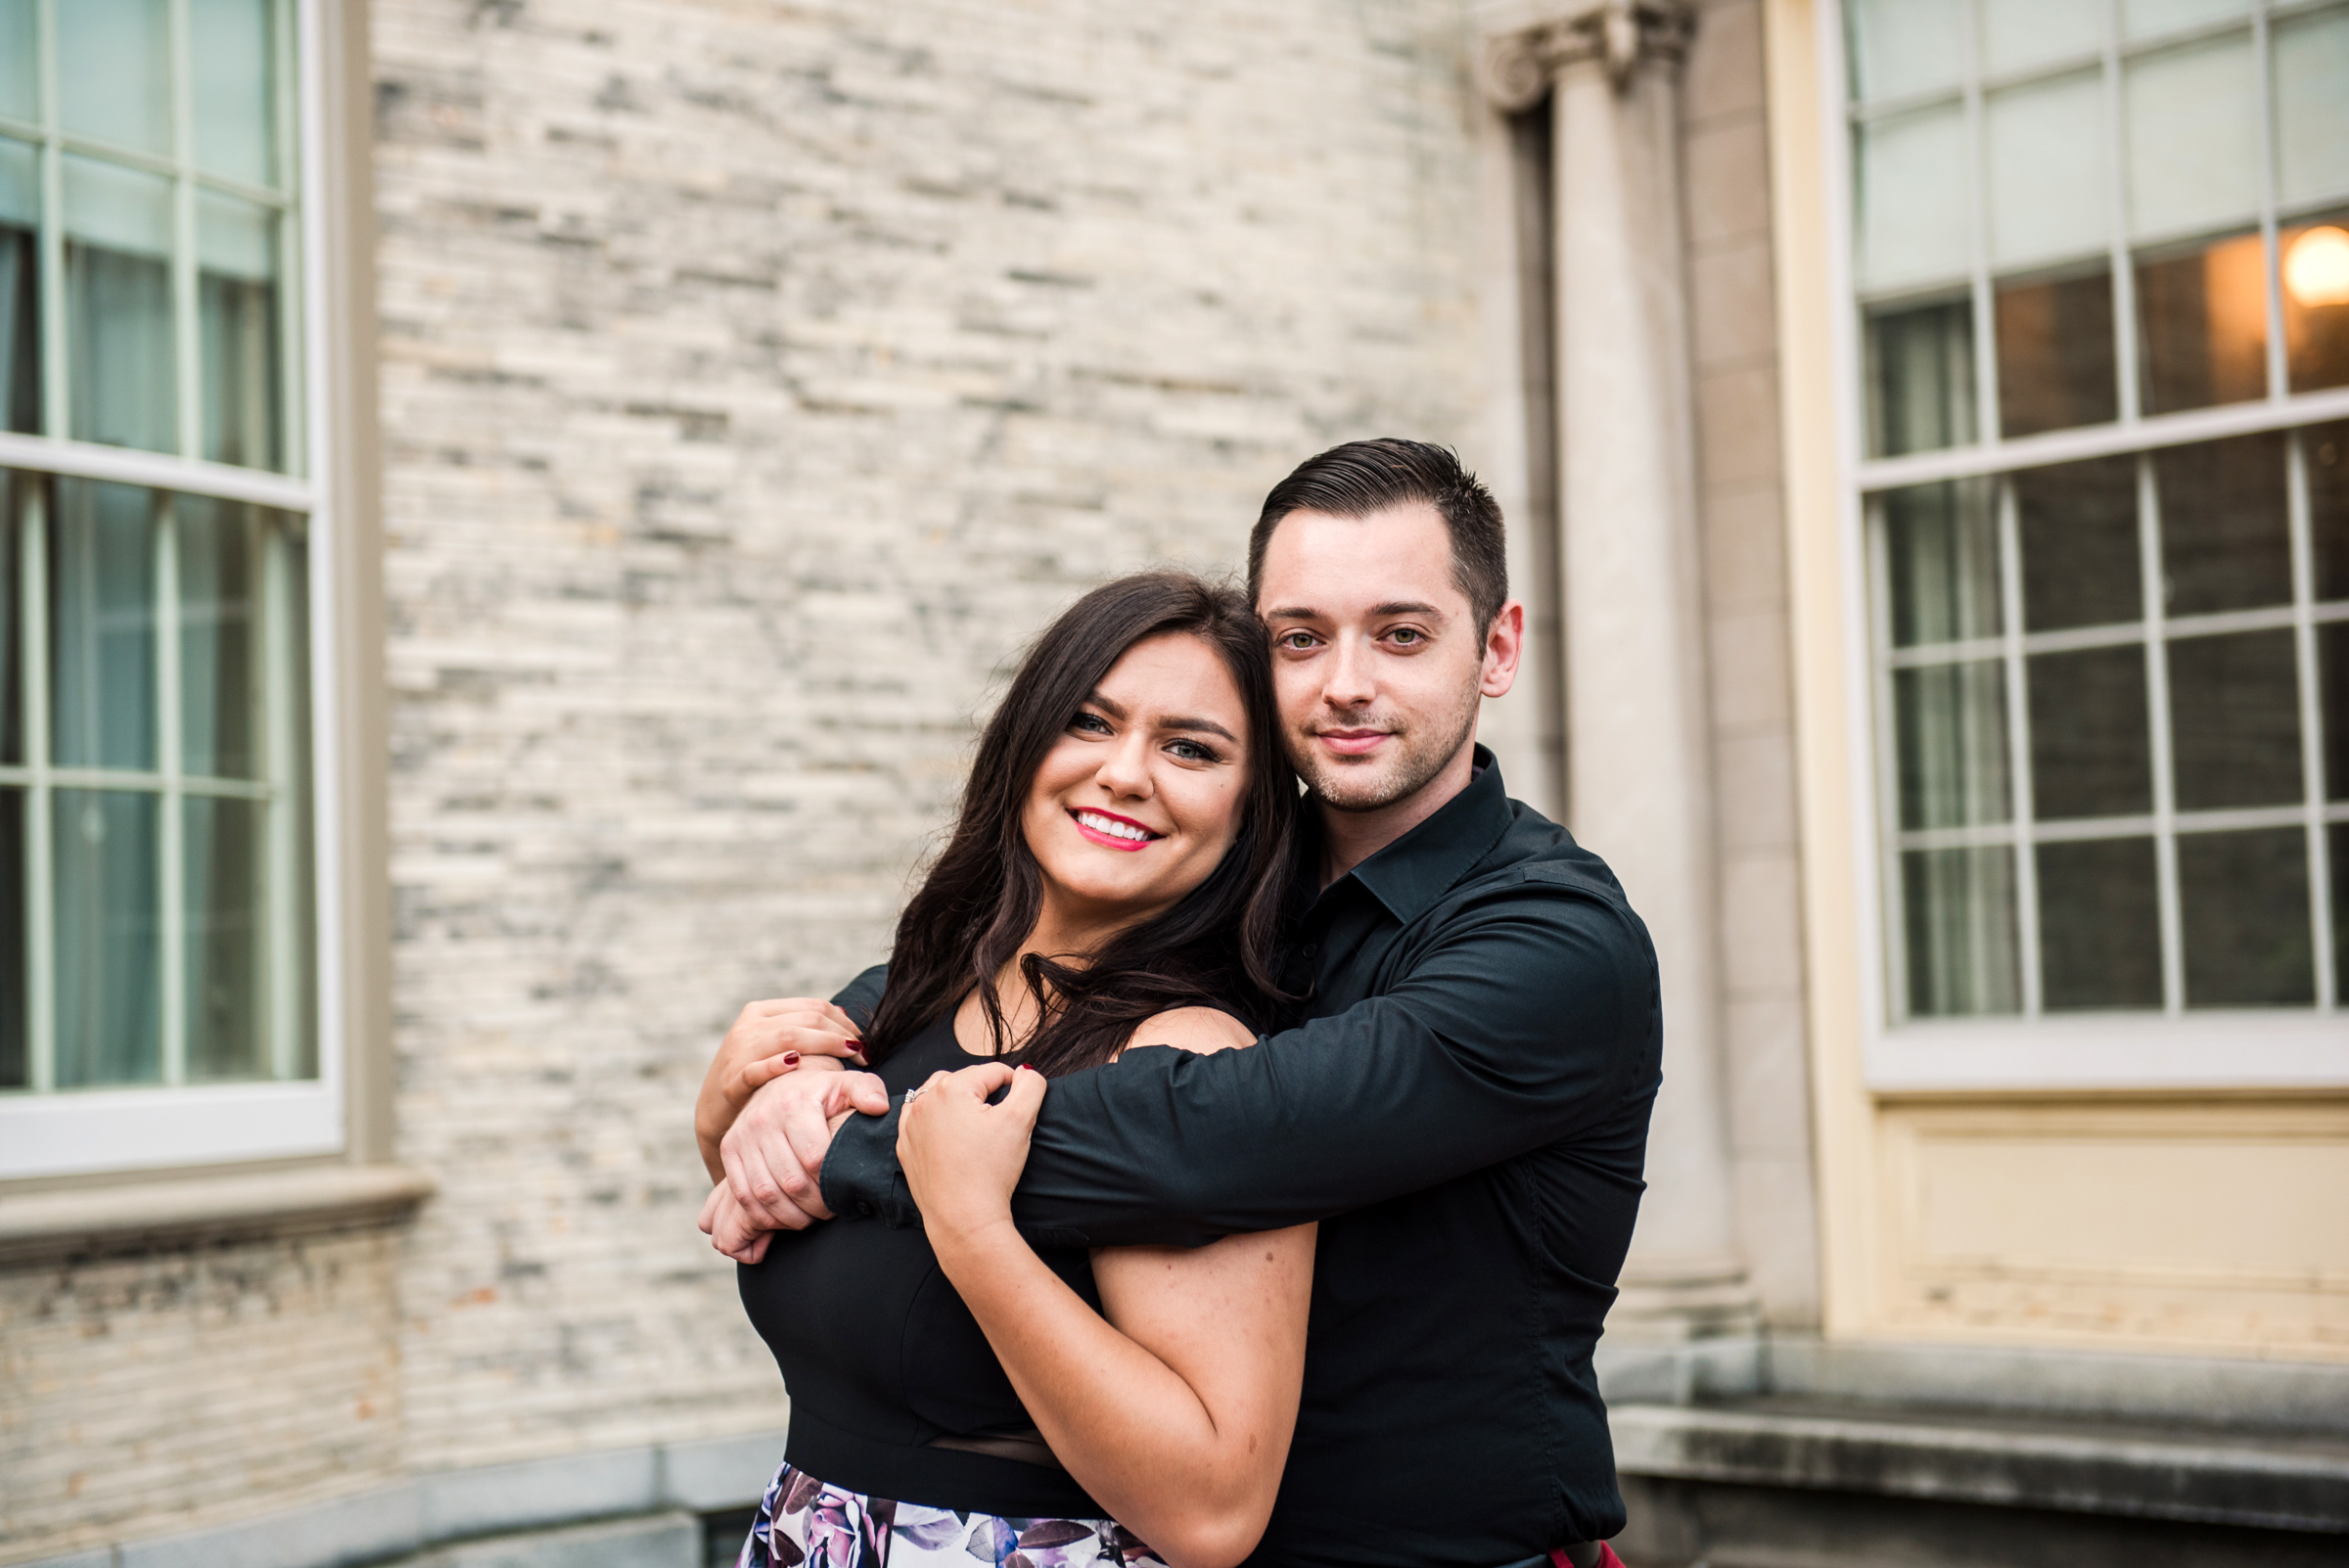 George_Eastman_House_Rochester_Engagement_Session_JILL_STUDIO_Rochester_NY_Photographer_DSC_6298.jpg